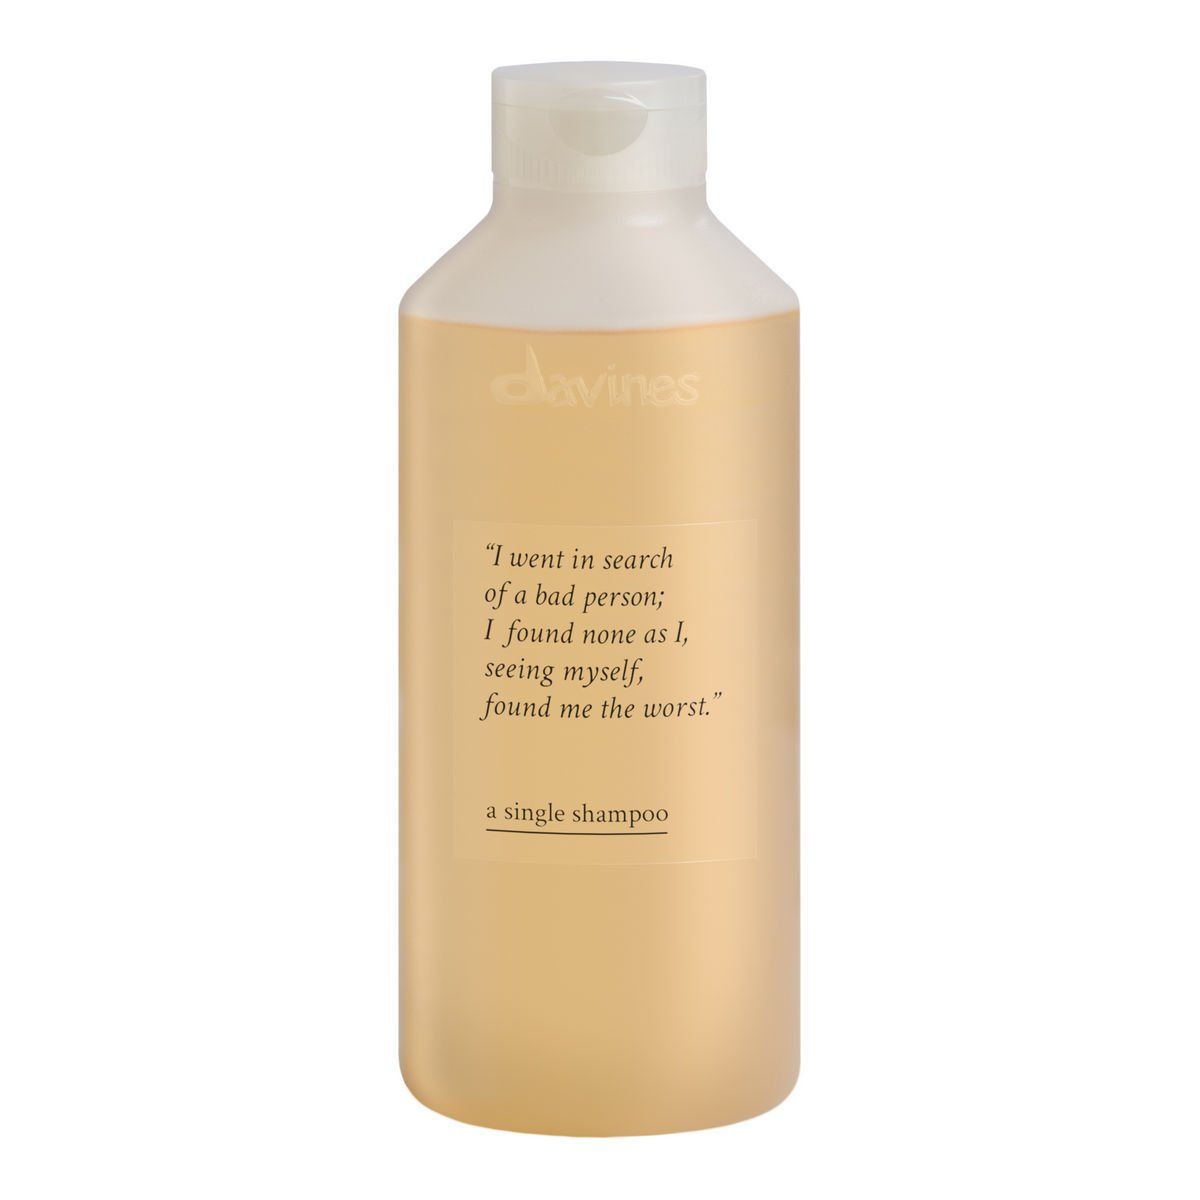 Here is the world's first carbon-neutral shampoo